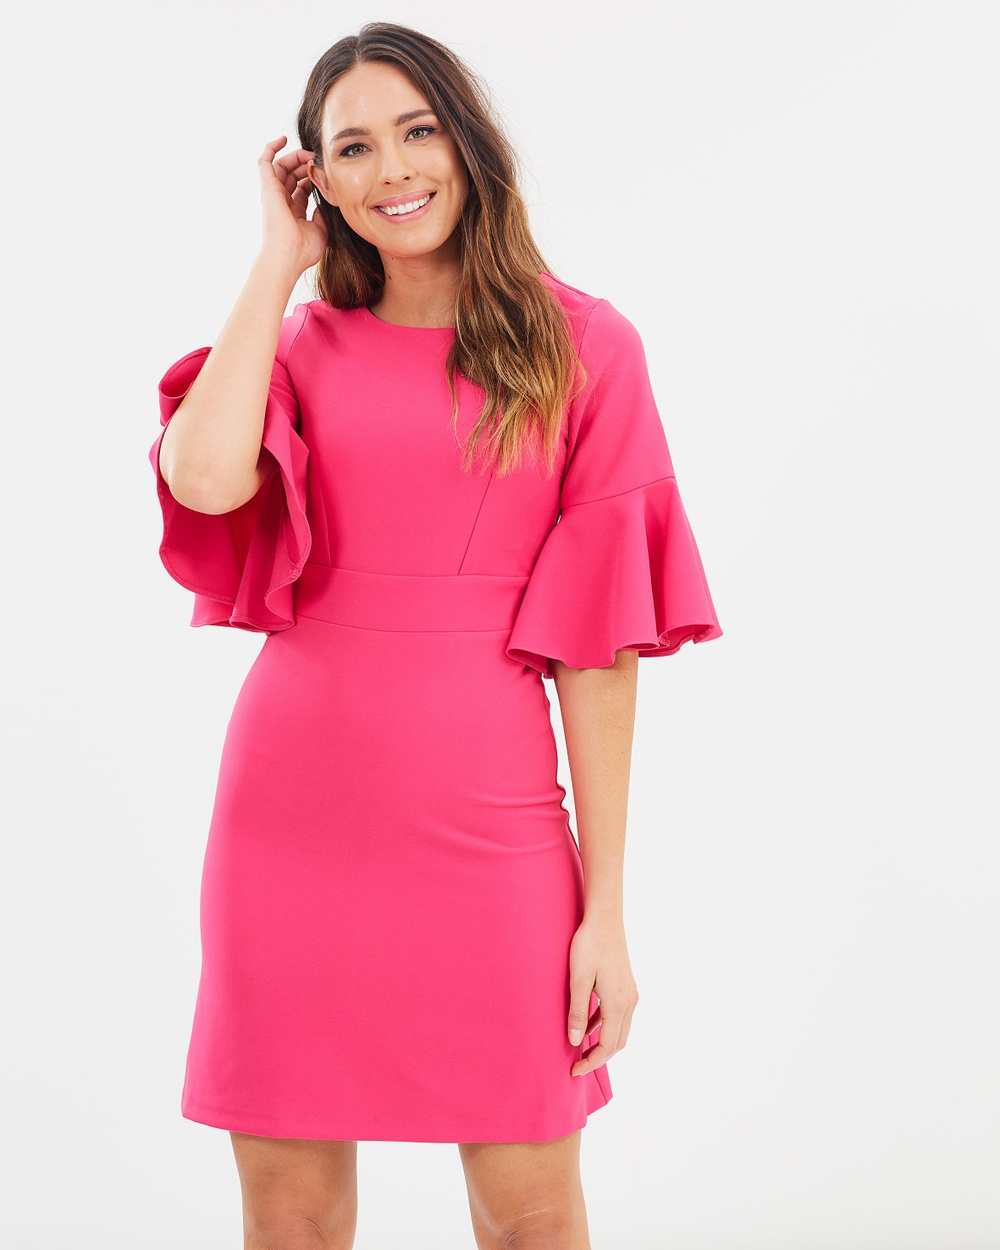 Closet London Tie Back Ruffle Dress Dresses Pink Tie Back Ruffle Dress